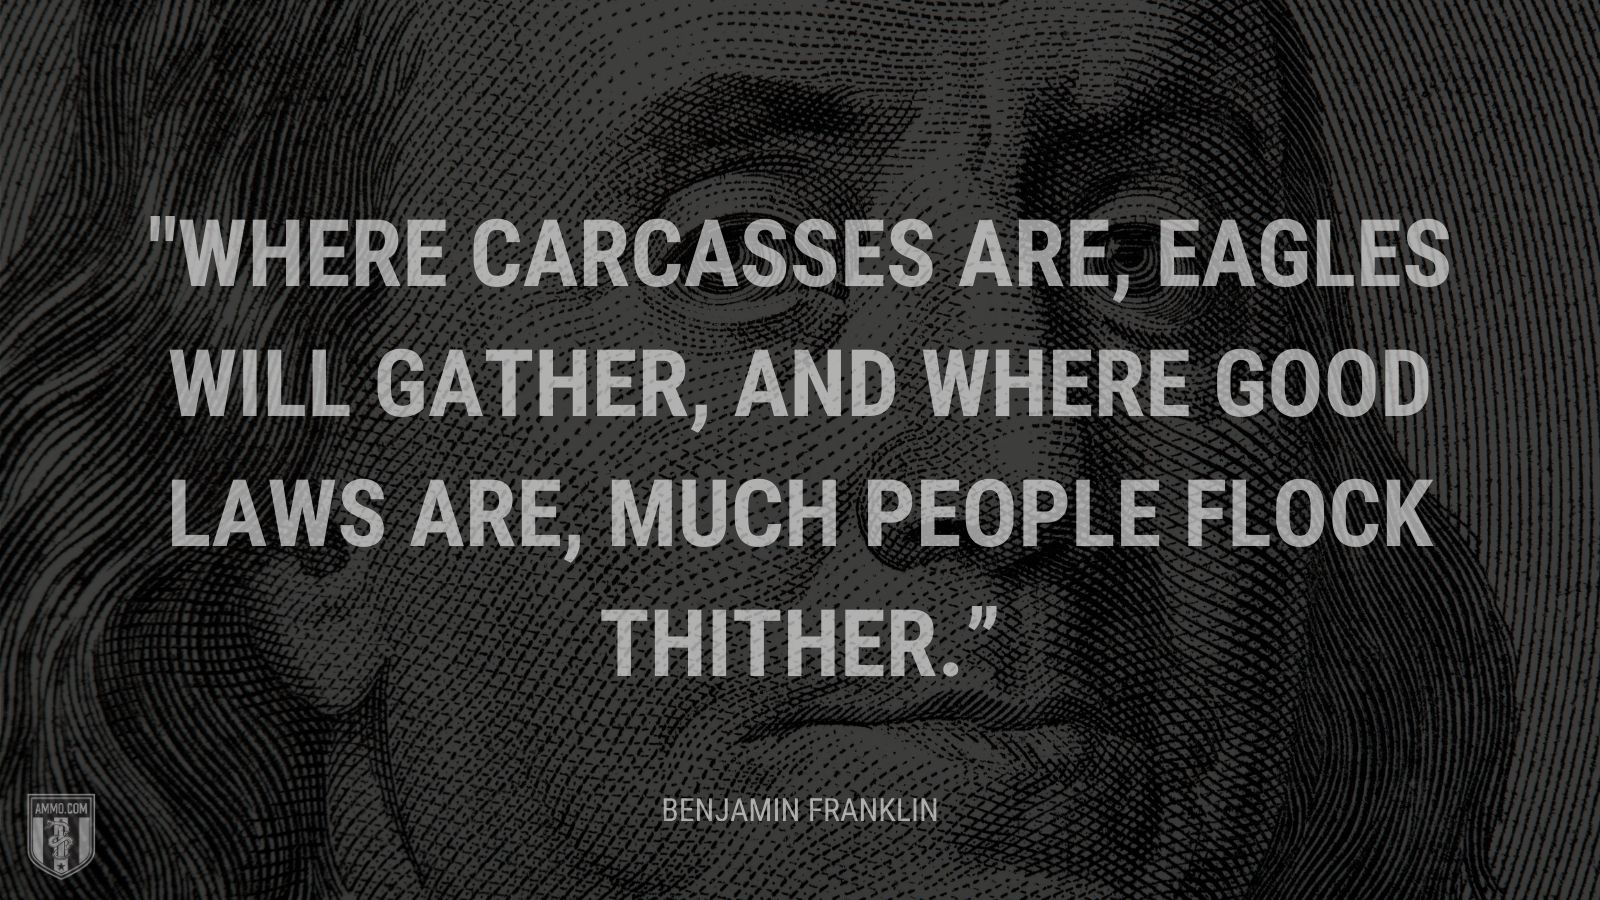 """Where carcasses are, eagles will gather, And where good laws are, much people flock thither."" - Benjamin Franklin"